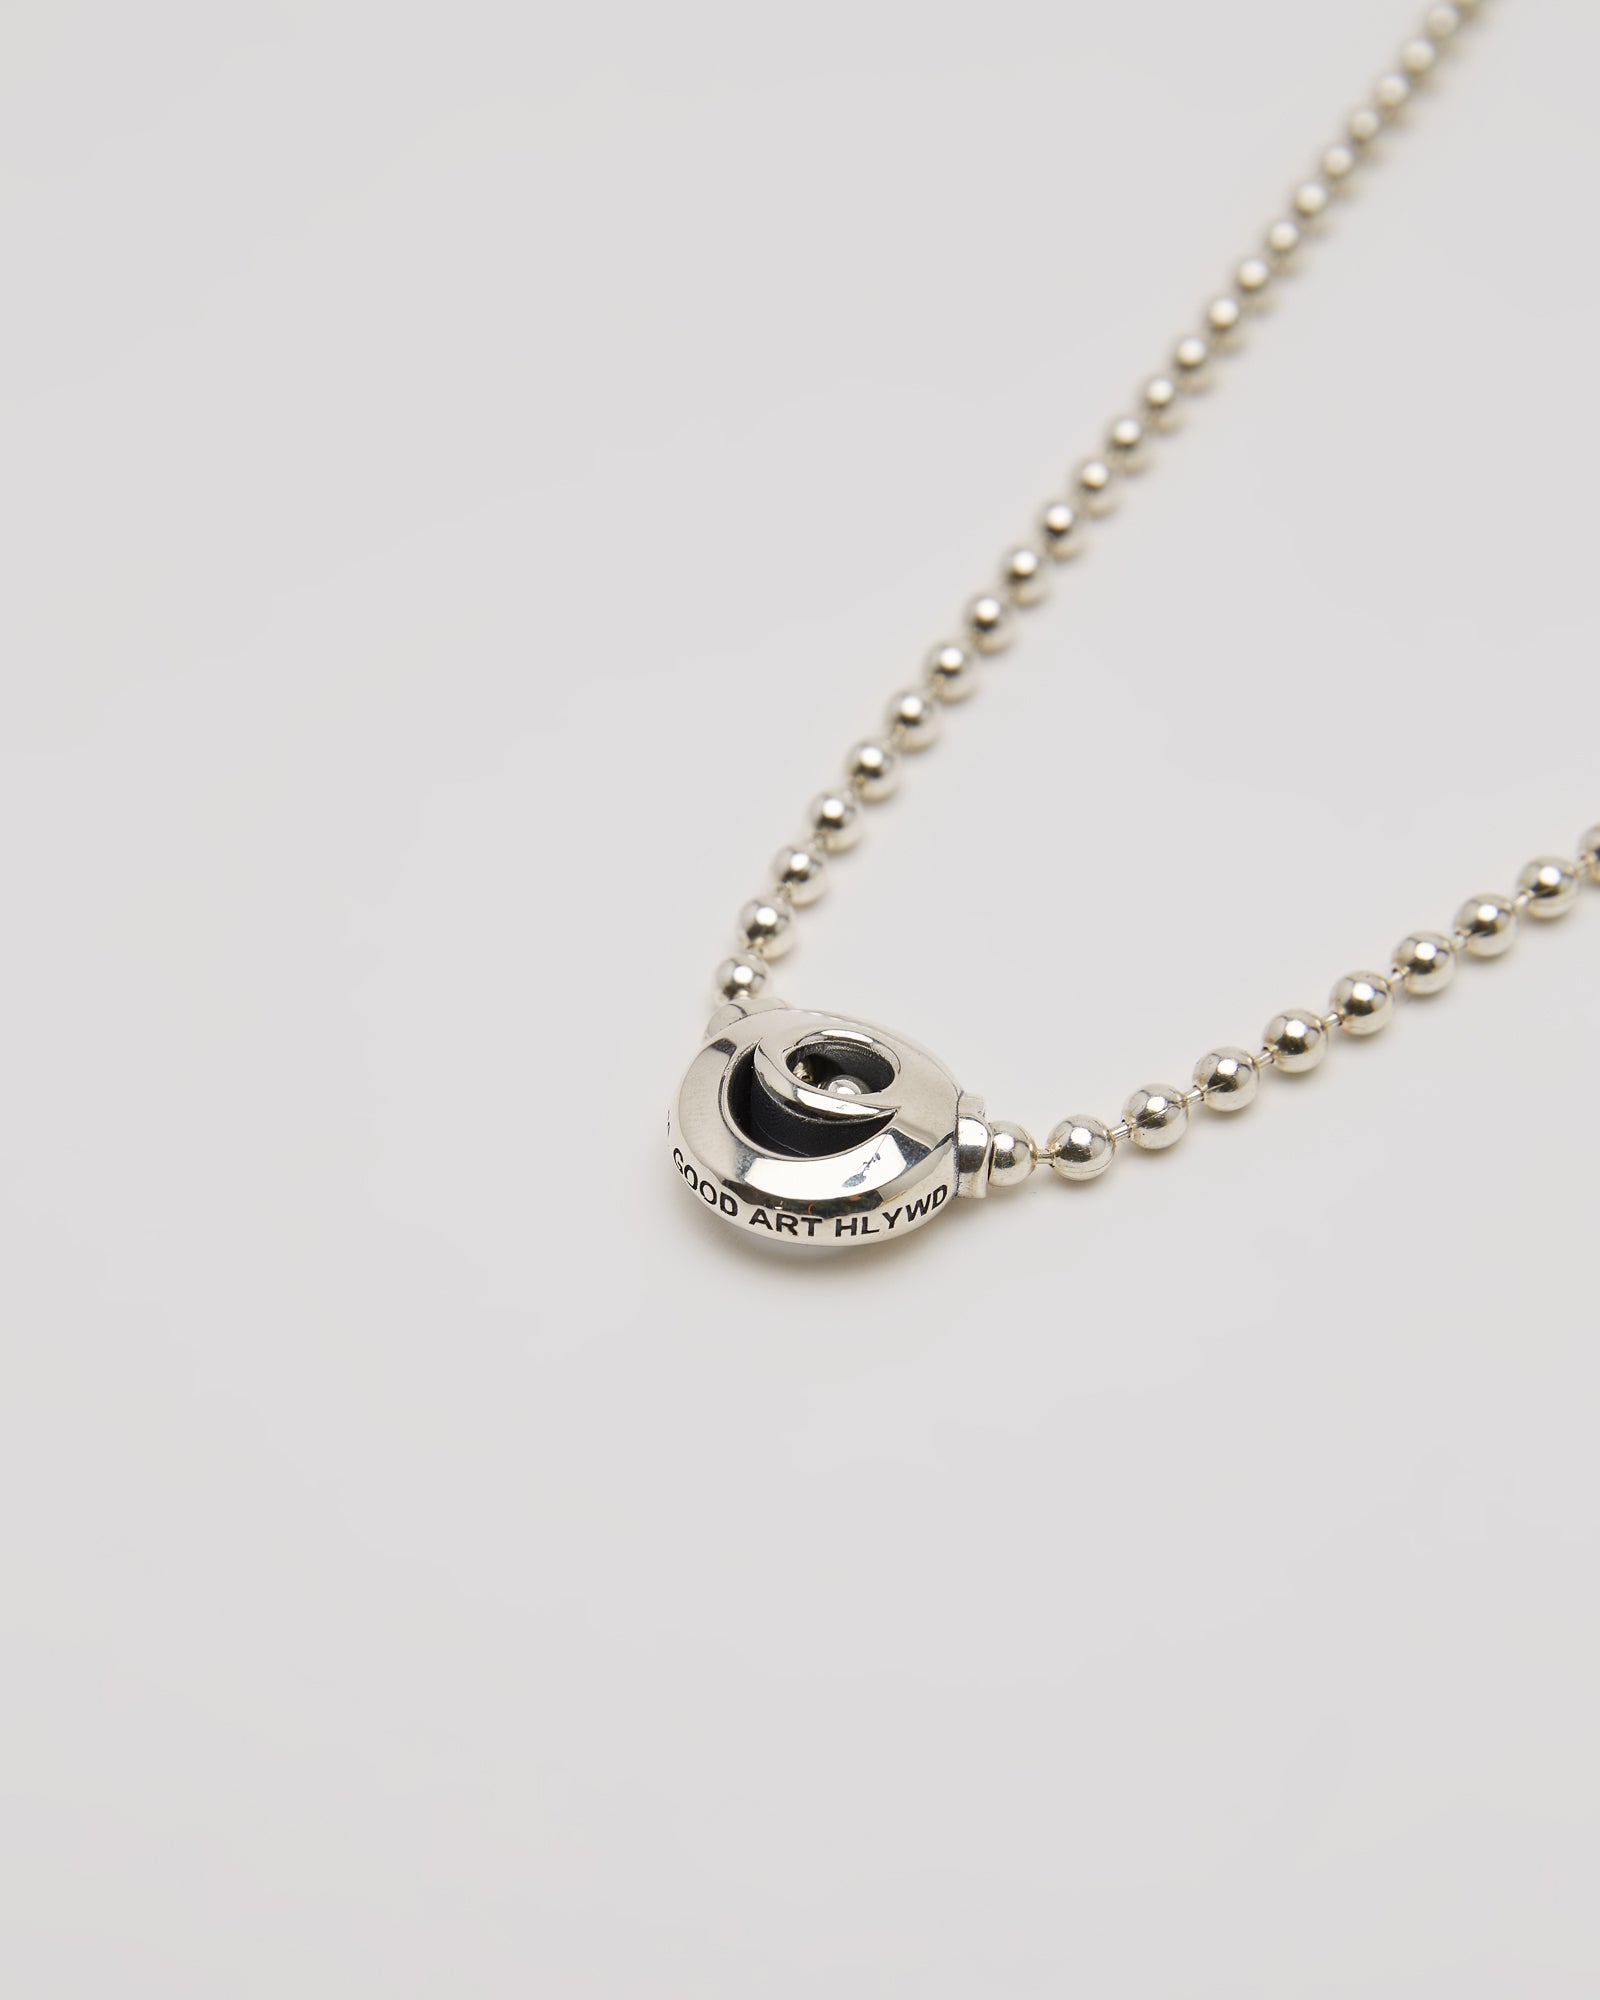 Smiles Necklace, sterling